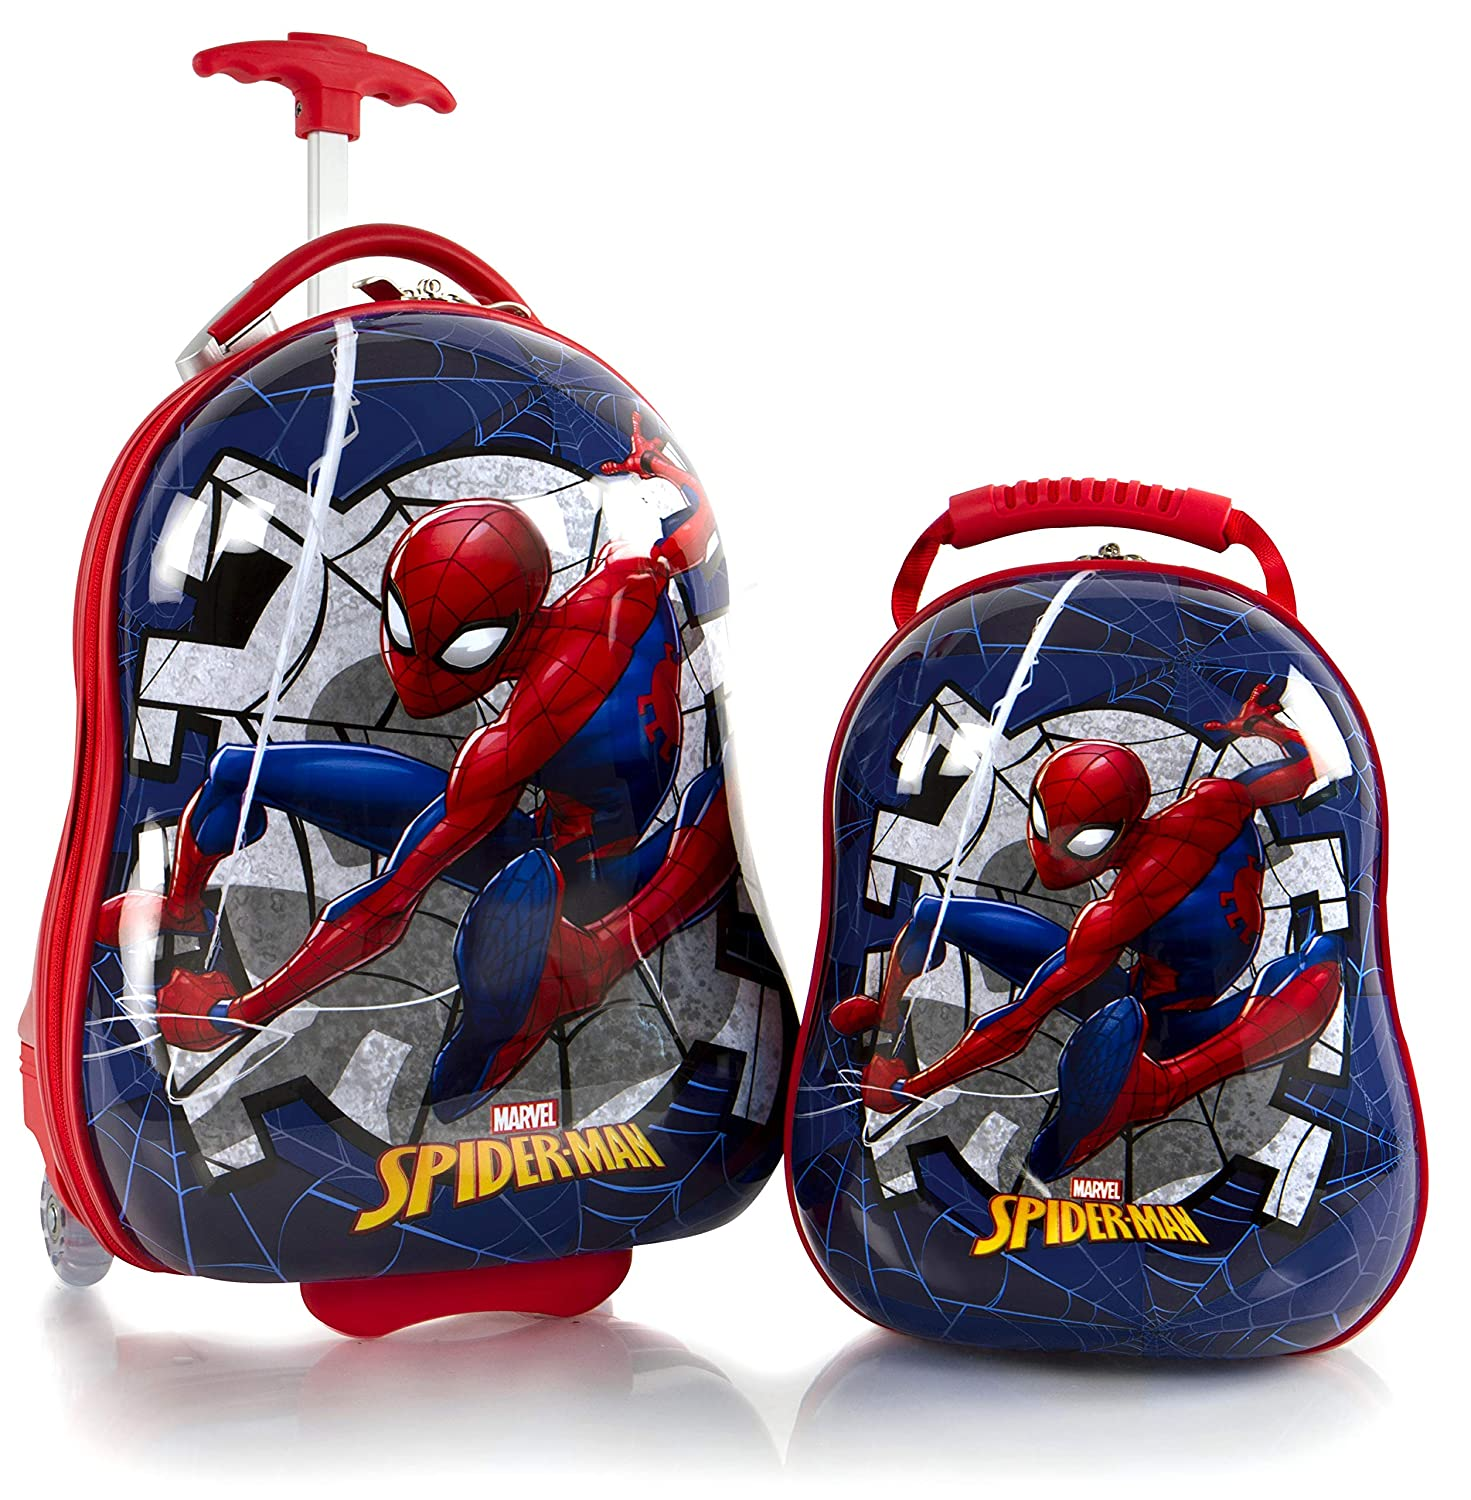 Heys America Spiderman Boy's 2 Pc Luggage Set 18 Carry On Luggage 12 Backpack